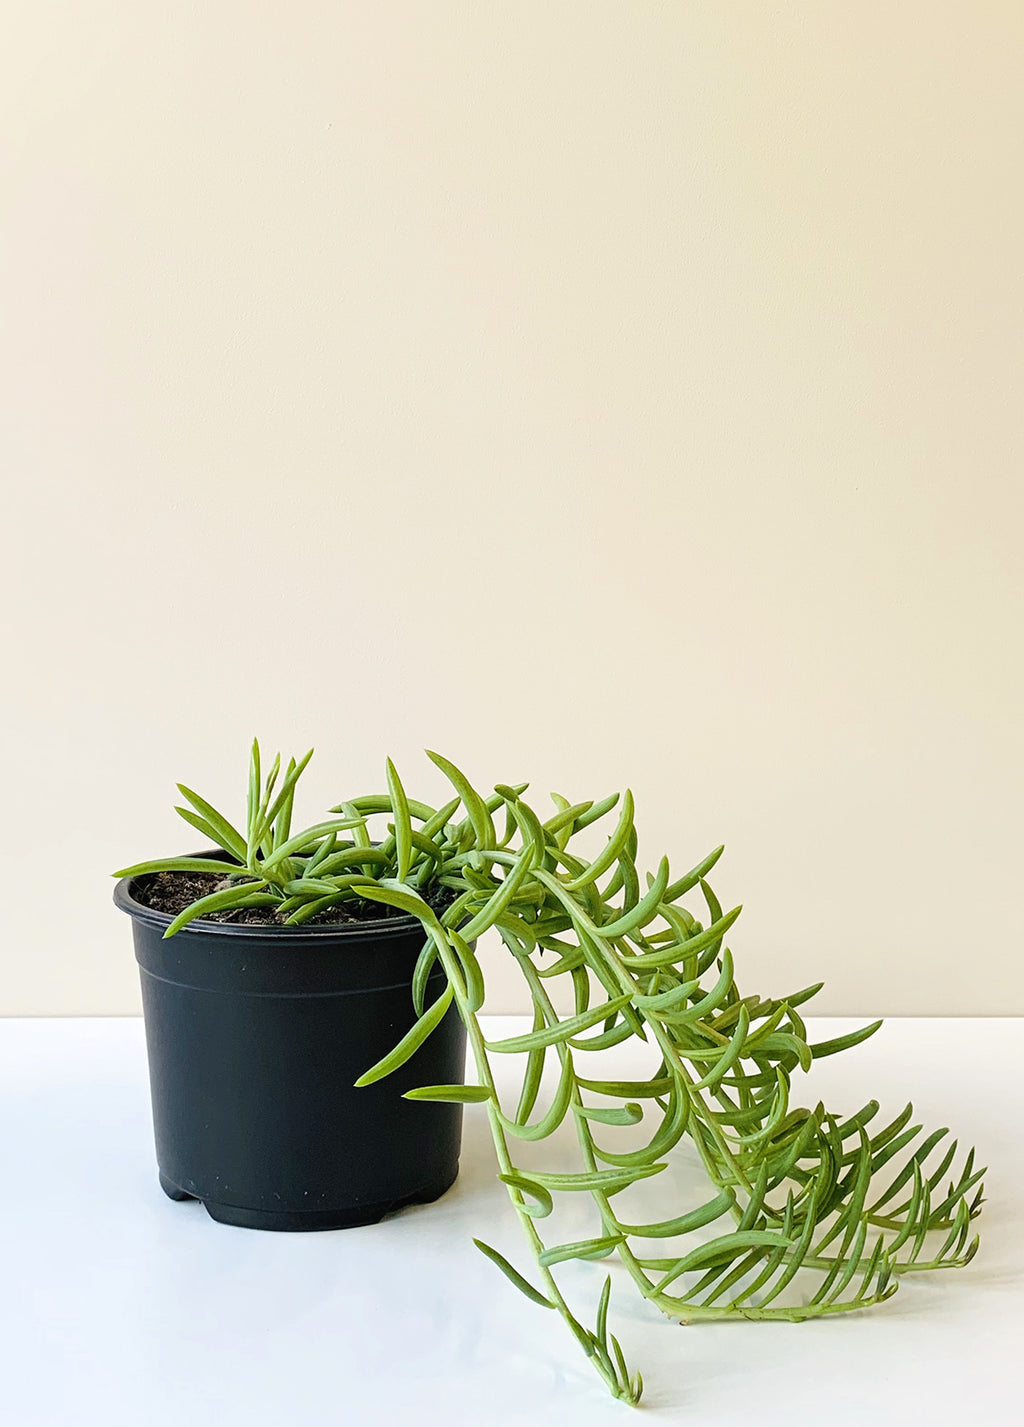 Senecio radicans - String of Fish Hooks